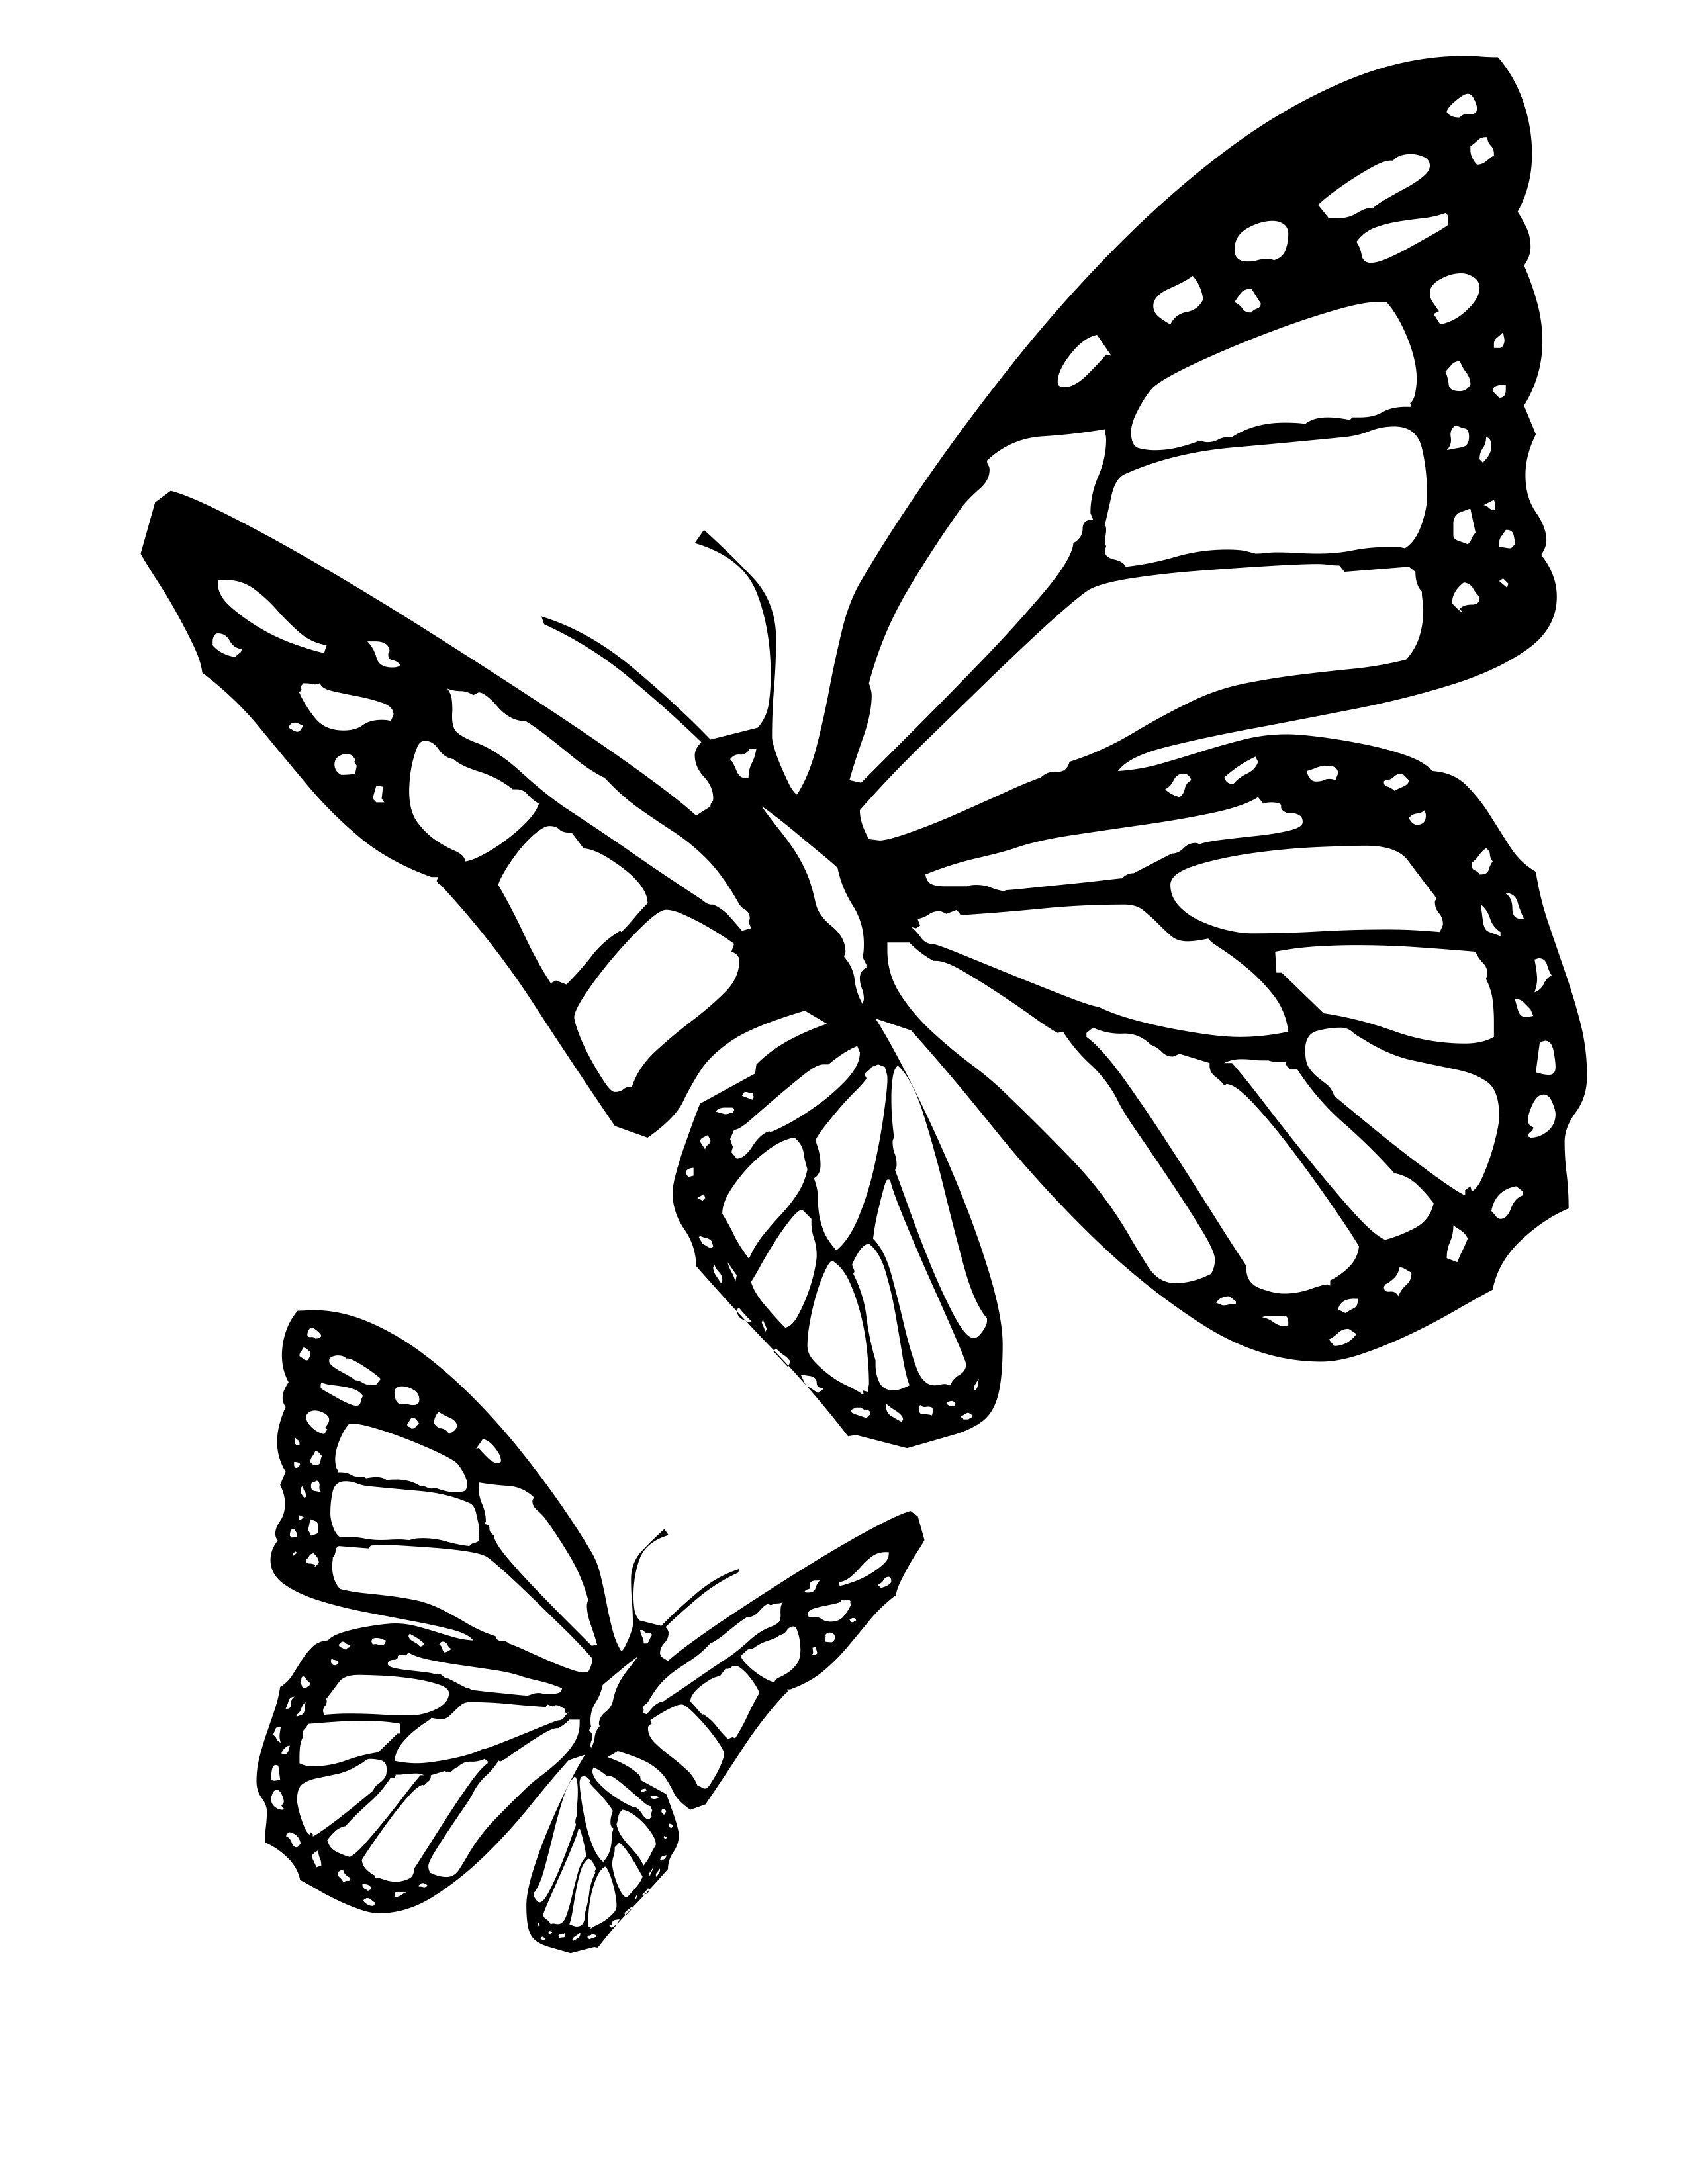 Cool Butterfly Coloring Pages Ideas For Girls And Boys Free Coloring Sheets Butterfly Tattoo Stencil Monarch Butterfly Tattoo Butterfly Outline